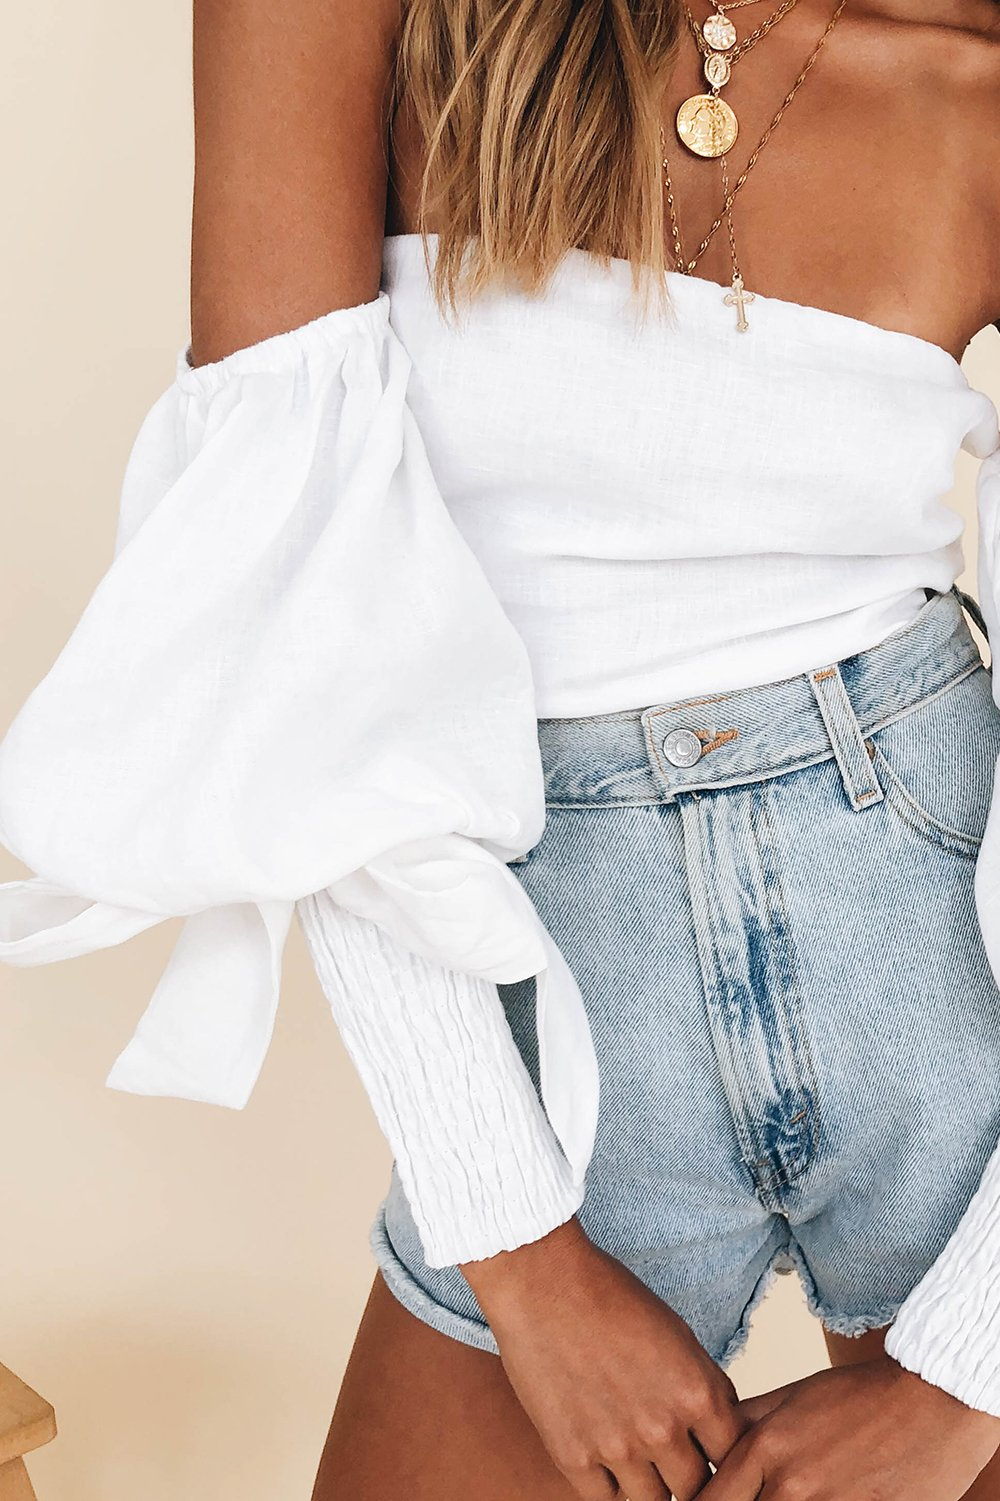 Purchase Link For Verge Girl Raised In Paris Cropped White Puffed Sleeve Blouse